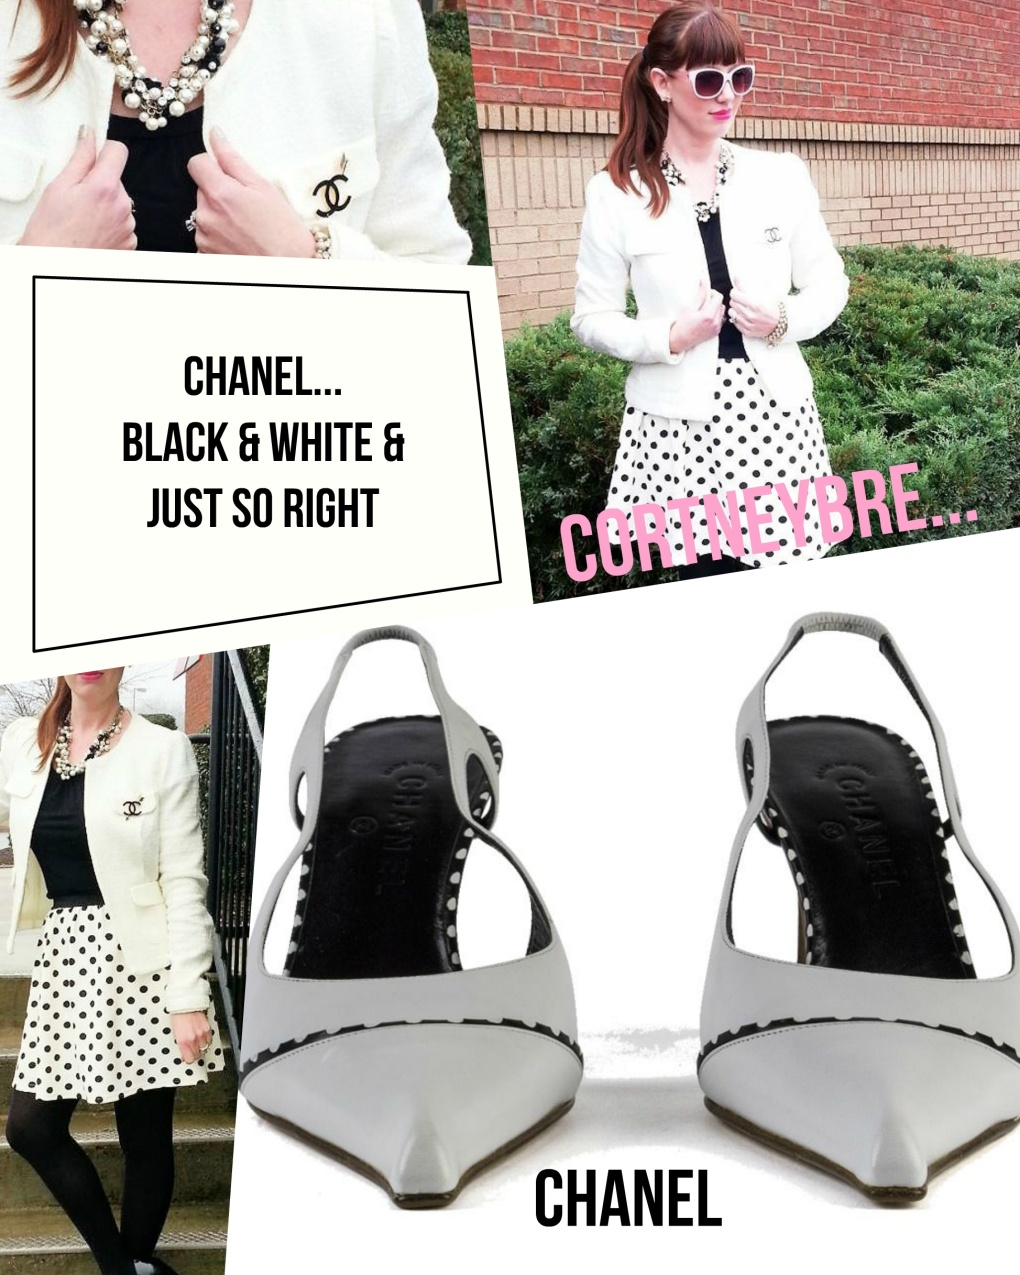 Blouse: Worthington Skirt: DH Styles Shoes: Chanel Jacket: Monteau Jewelry: Bealles